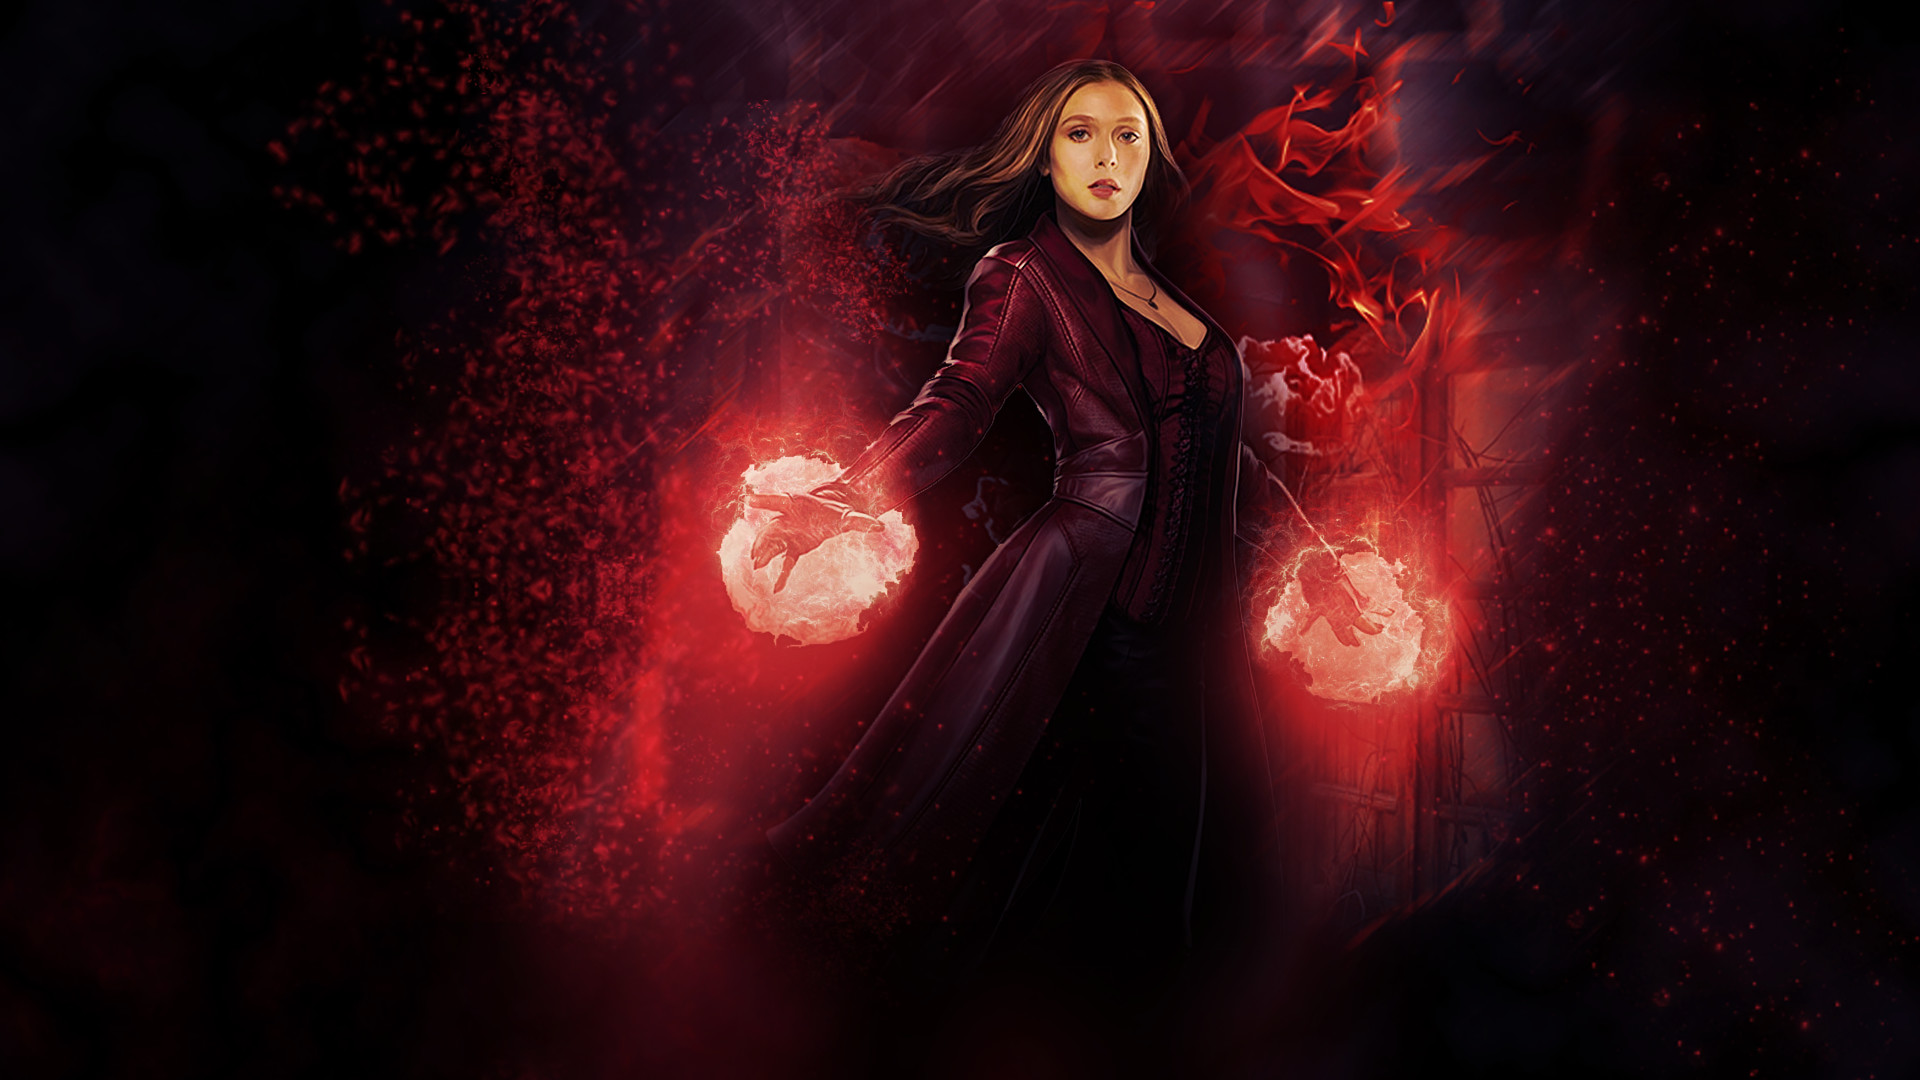 scarlet witch marvel avengers super hero hd background wallpaper